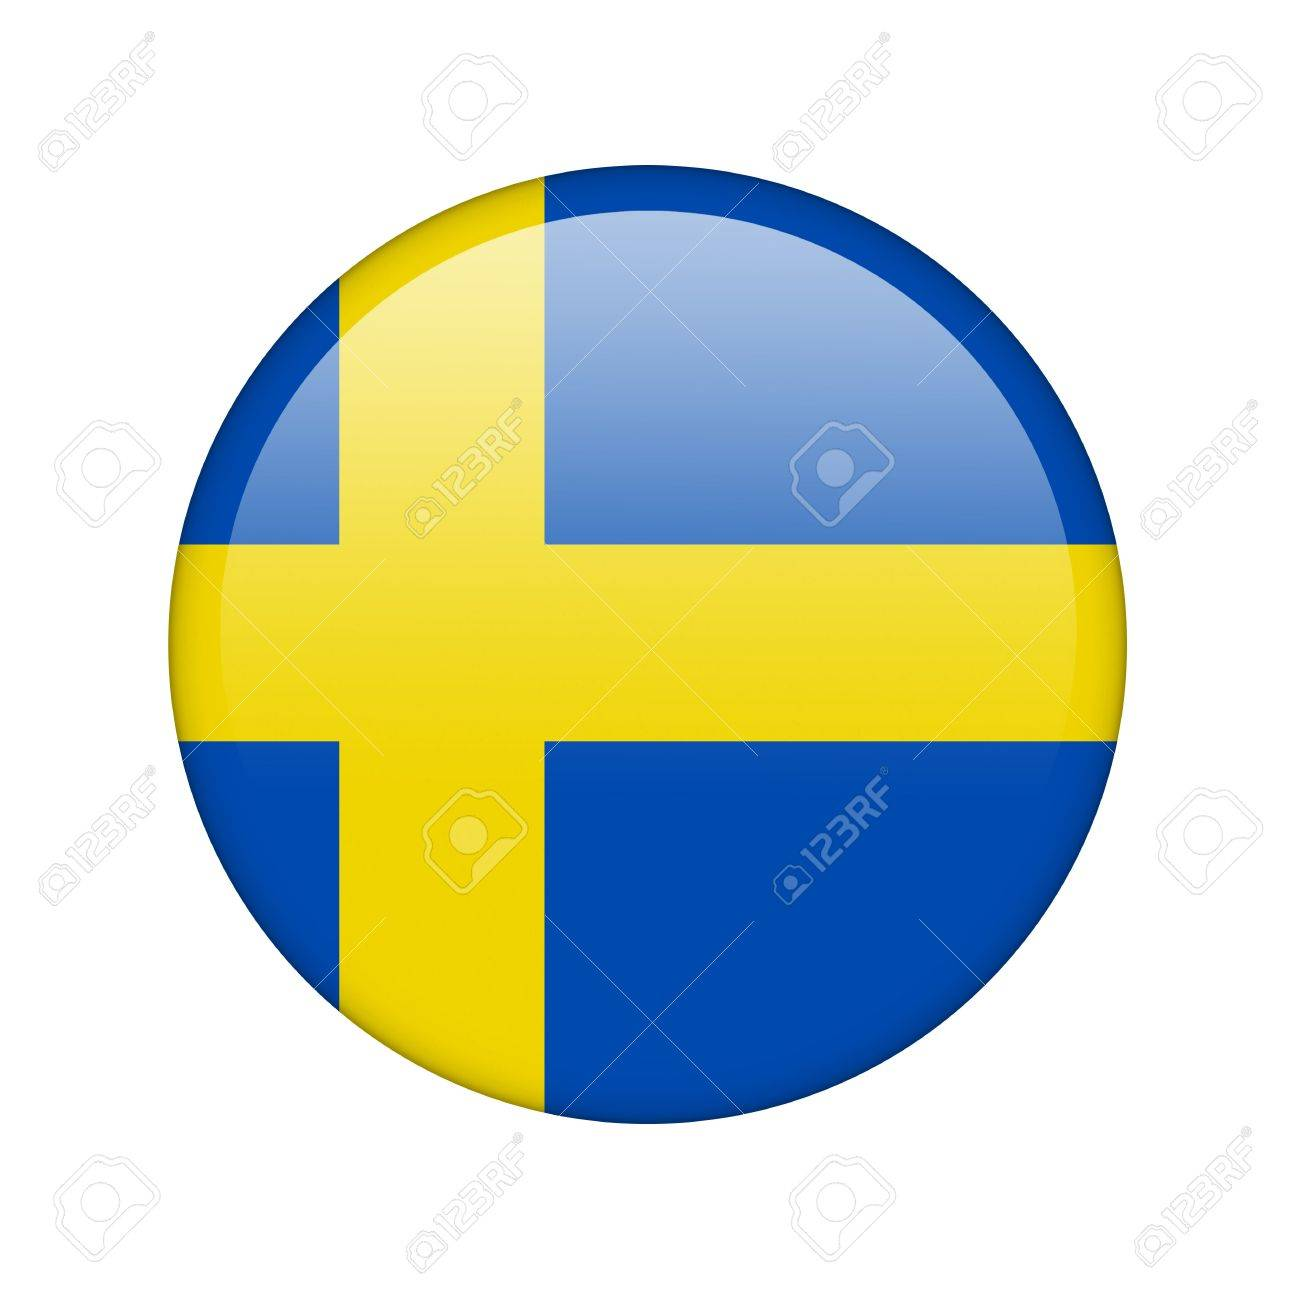 The Swedish flag in the form of a glossy icon. Stock Photo - 16760682